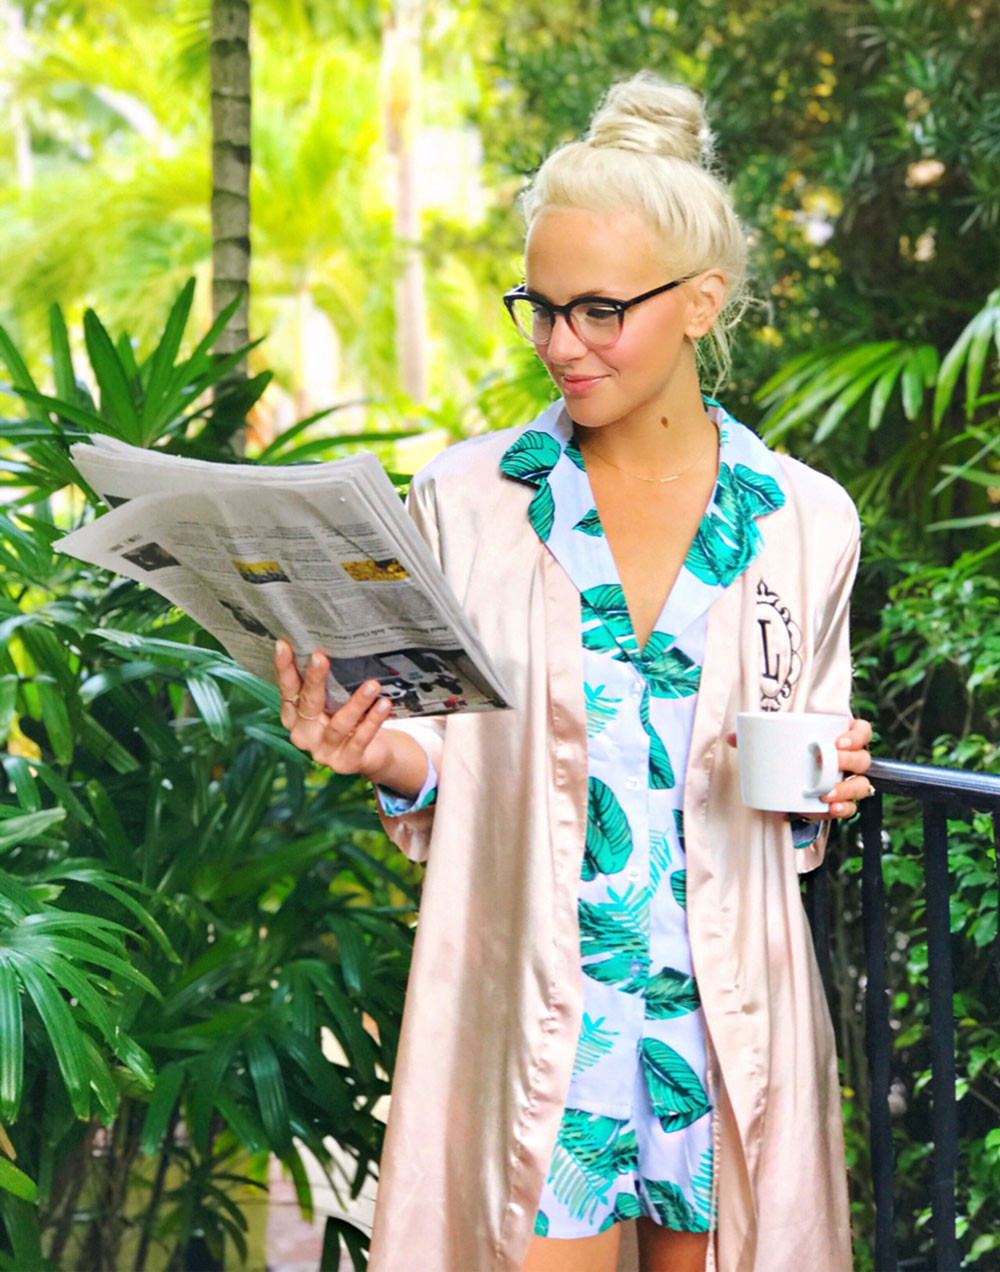 palm-print-white-and-green-womens-button-up-pajamas